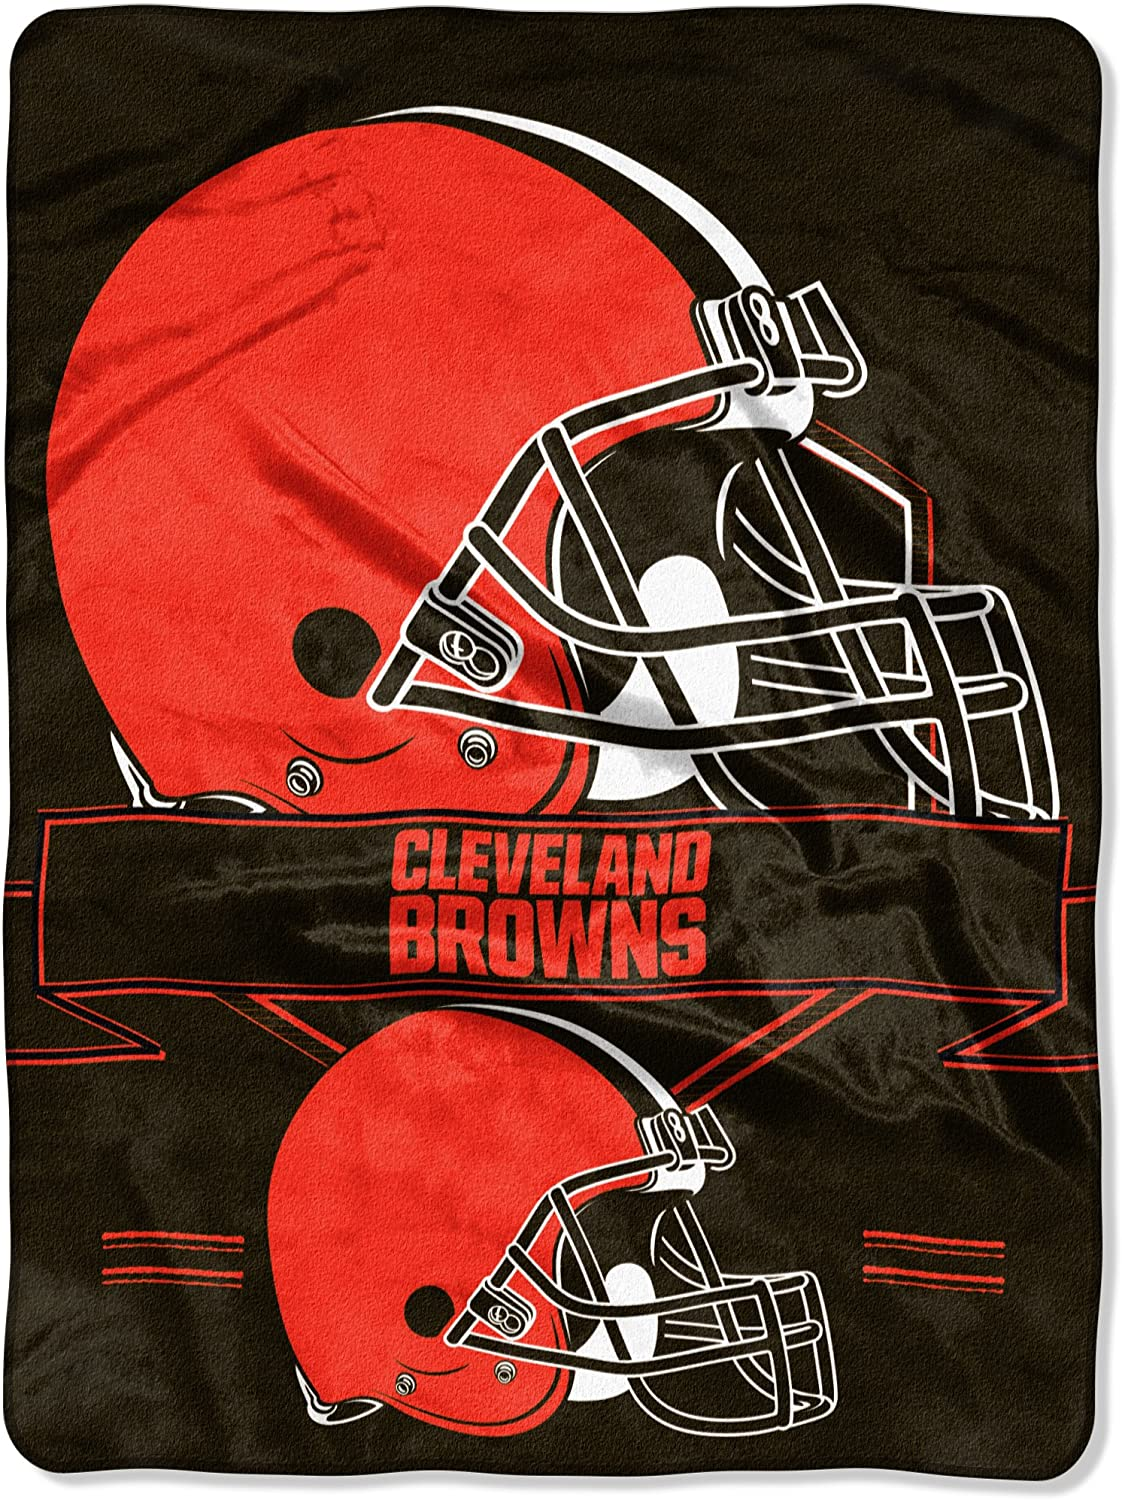 Officially Licensed Nfl Throw Cleveland Browns Fleece Blanket